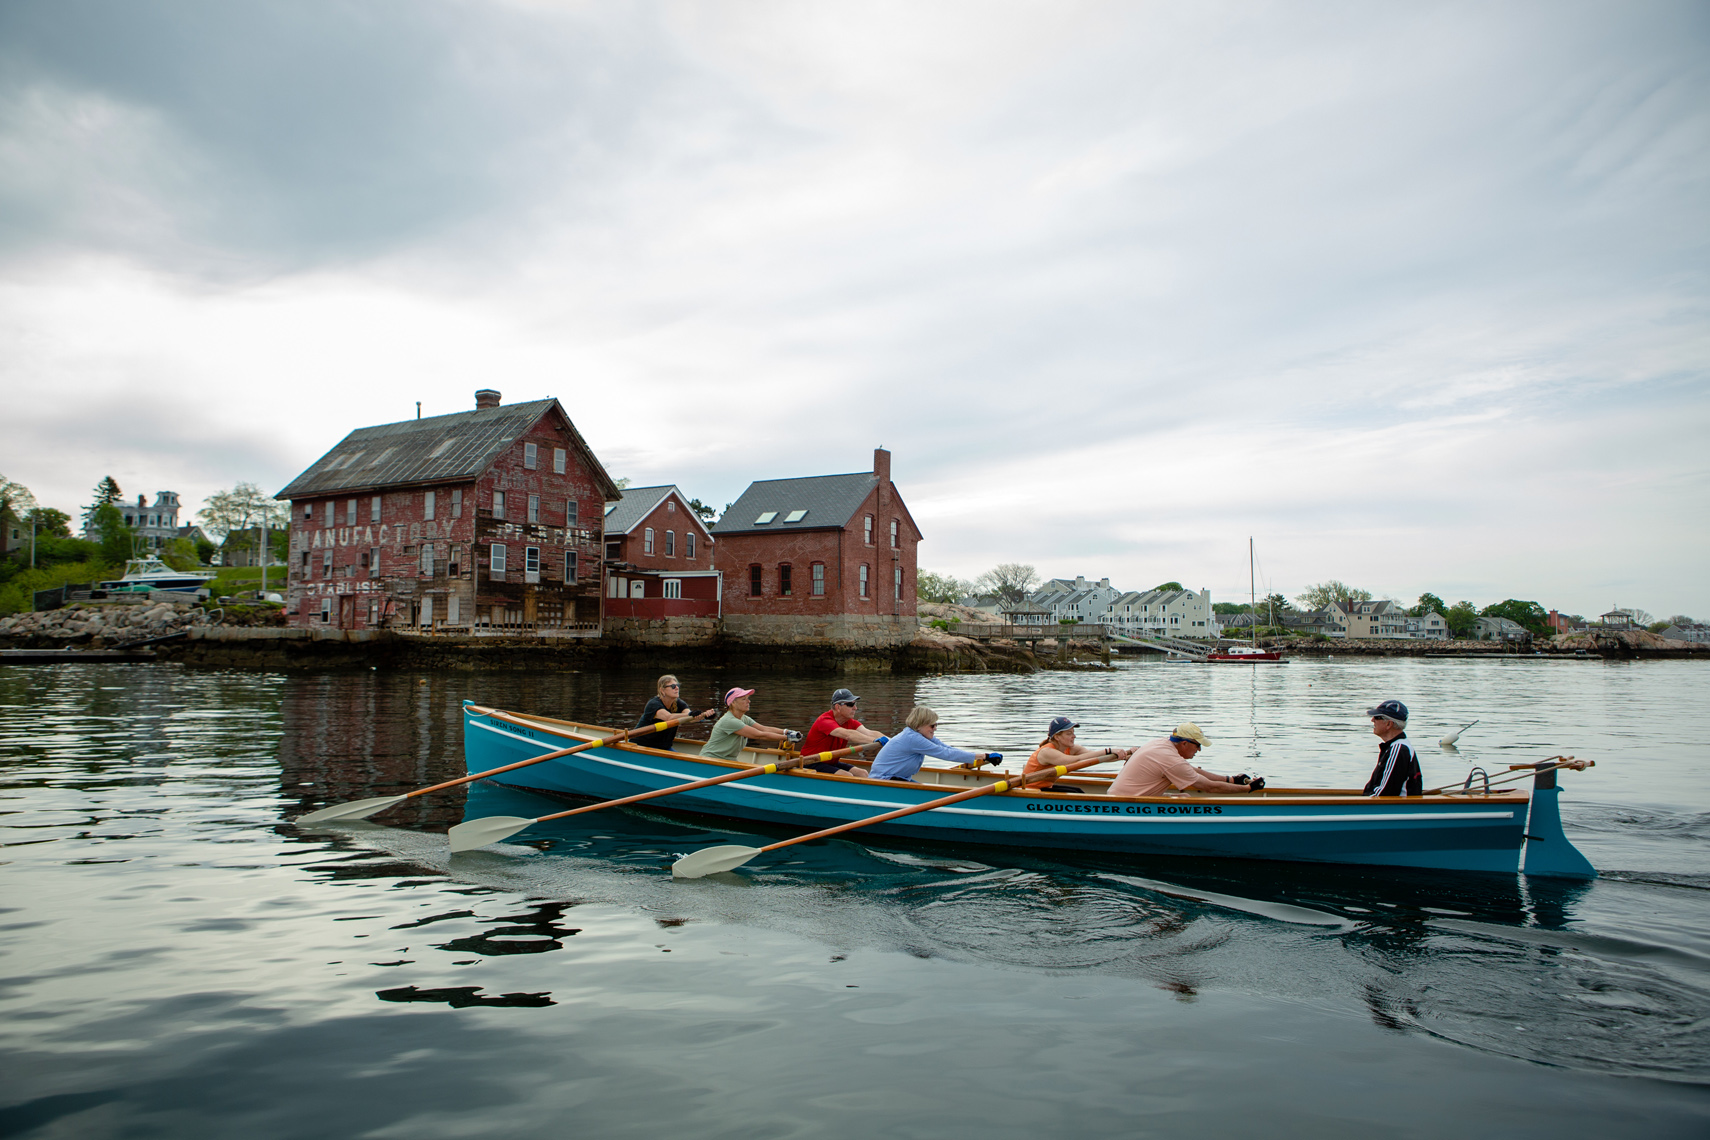 GLOUCESTER GIG BOAT ROWERS • THE OTHER CAPE • JASON GROW PHOTOGAPHY